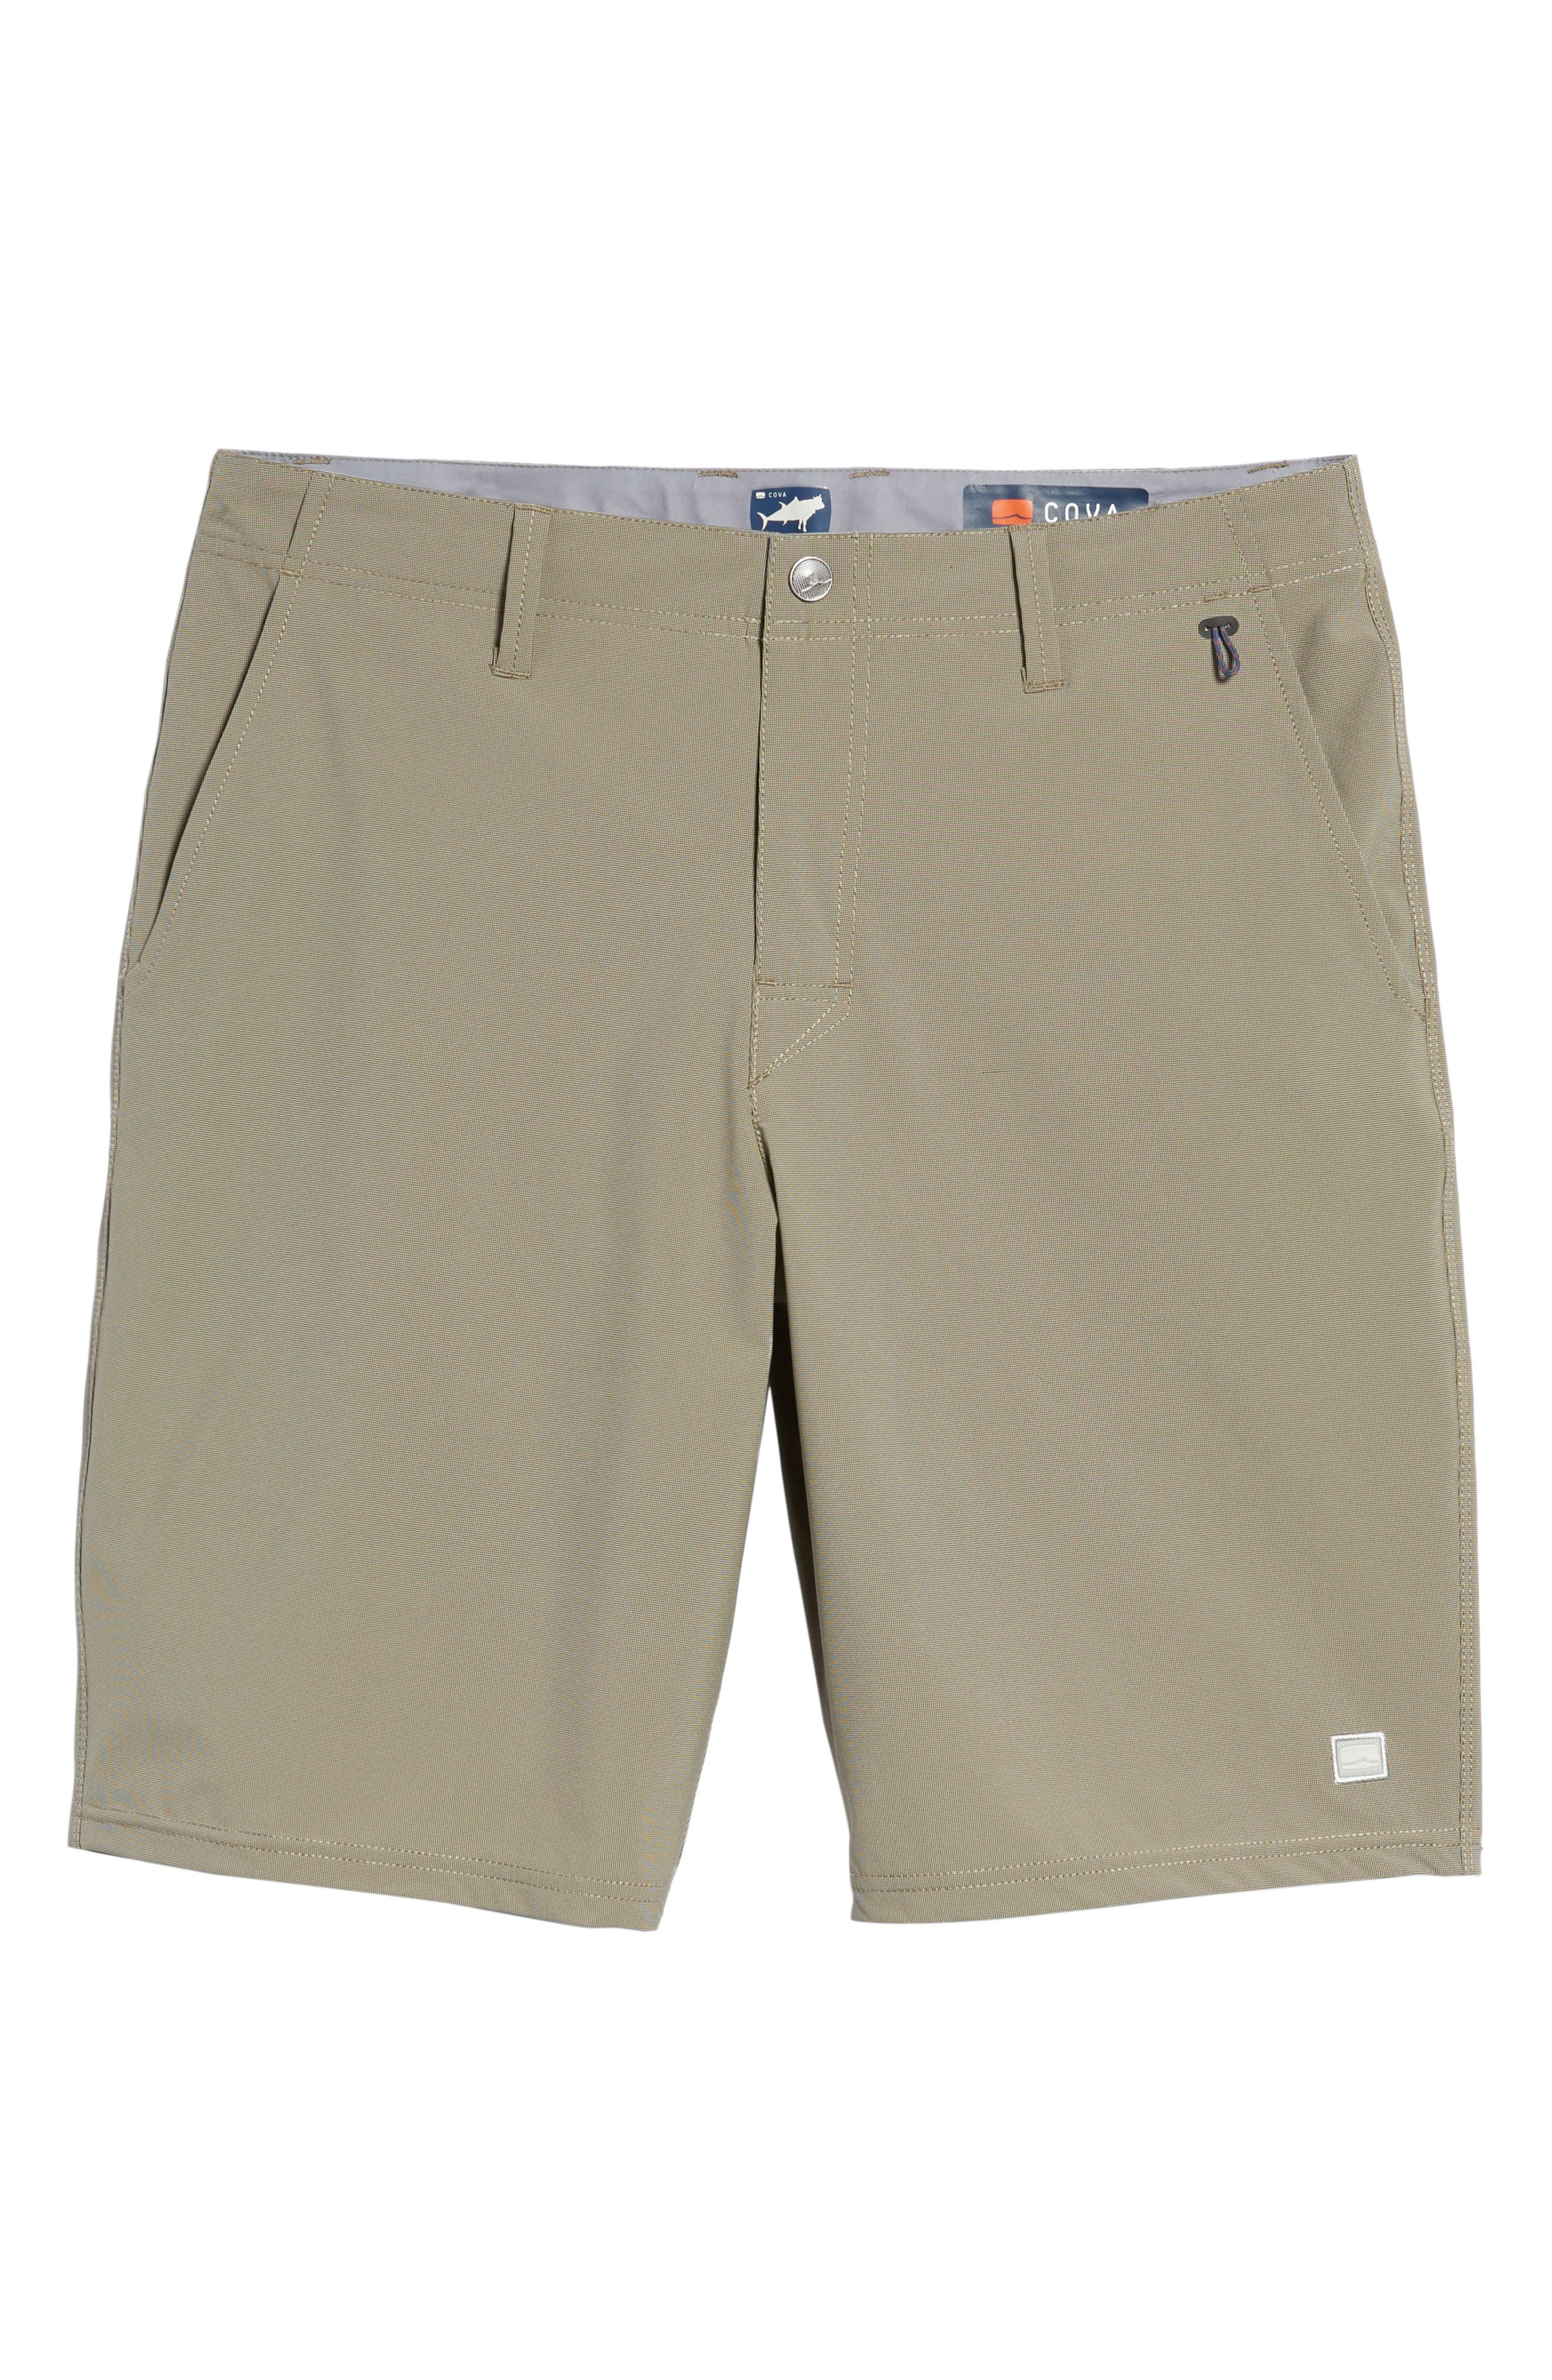 Seaside Hybrid Shorts,                             Alternate thumbnail 6, color,                             Espresso